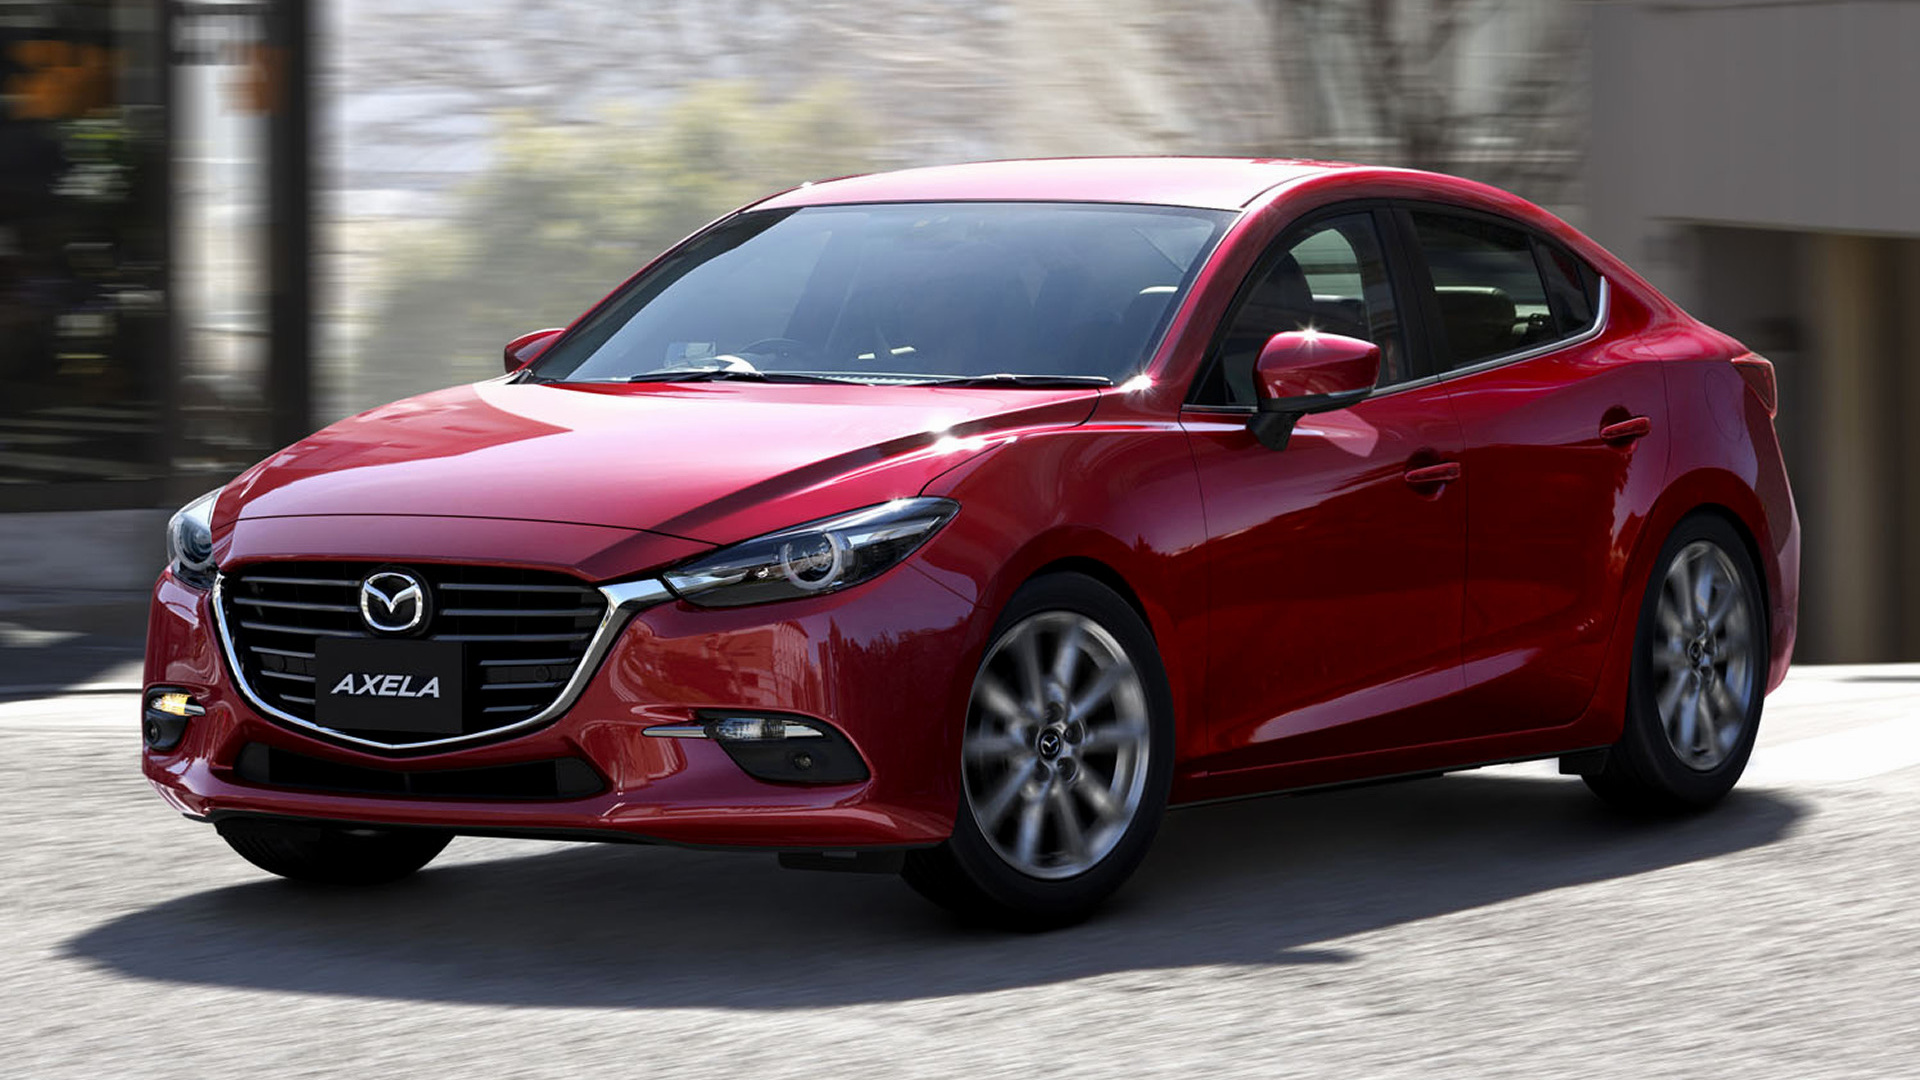 2016 Mazda Axela Sedan - Wallpapers and HD Images | Car Pixel